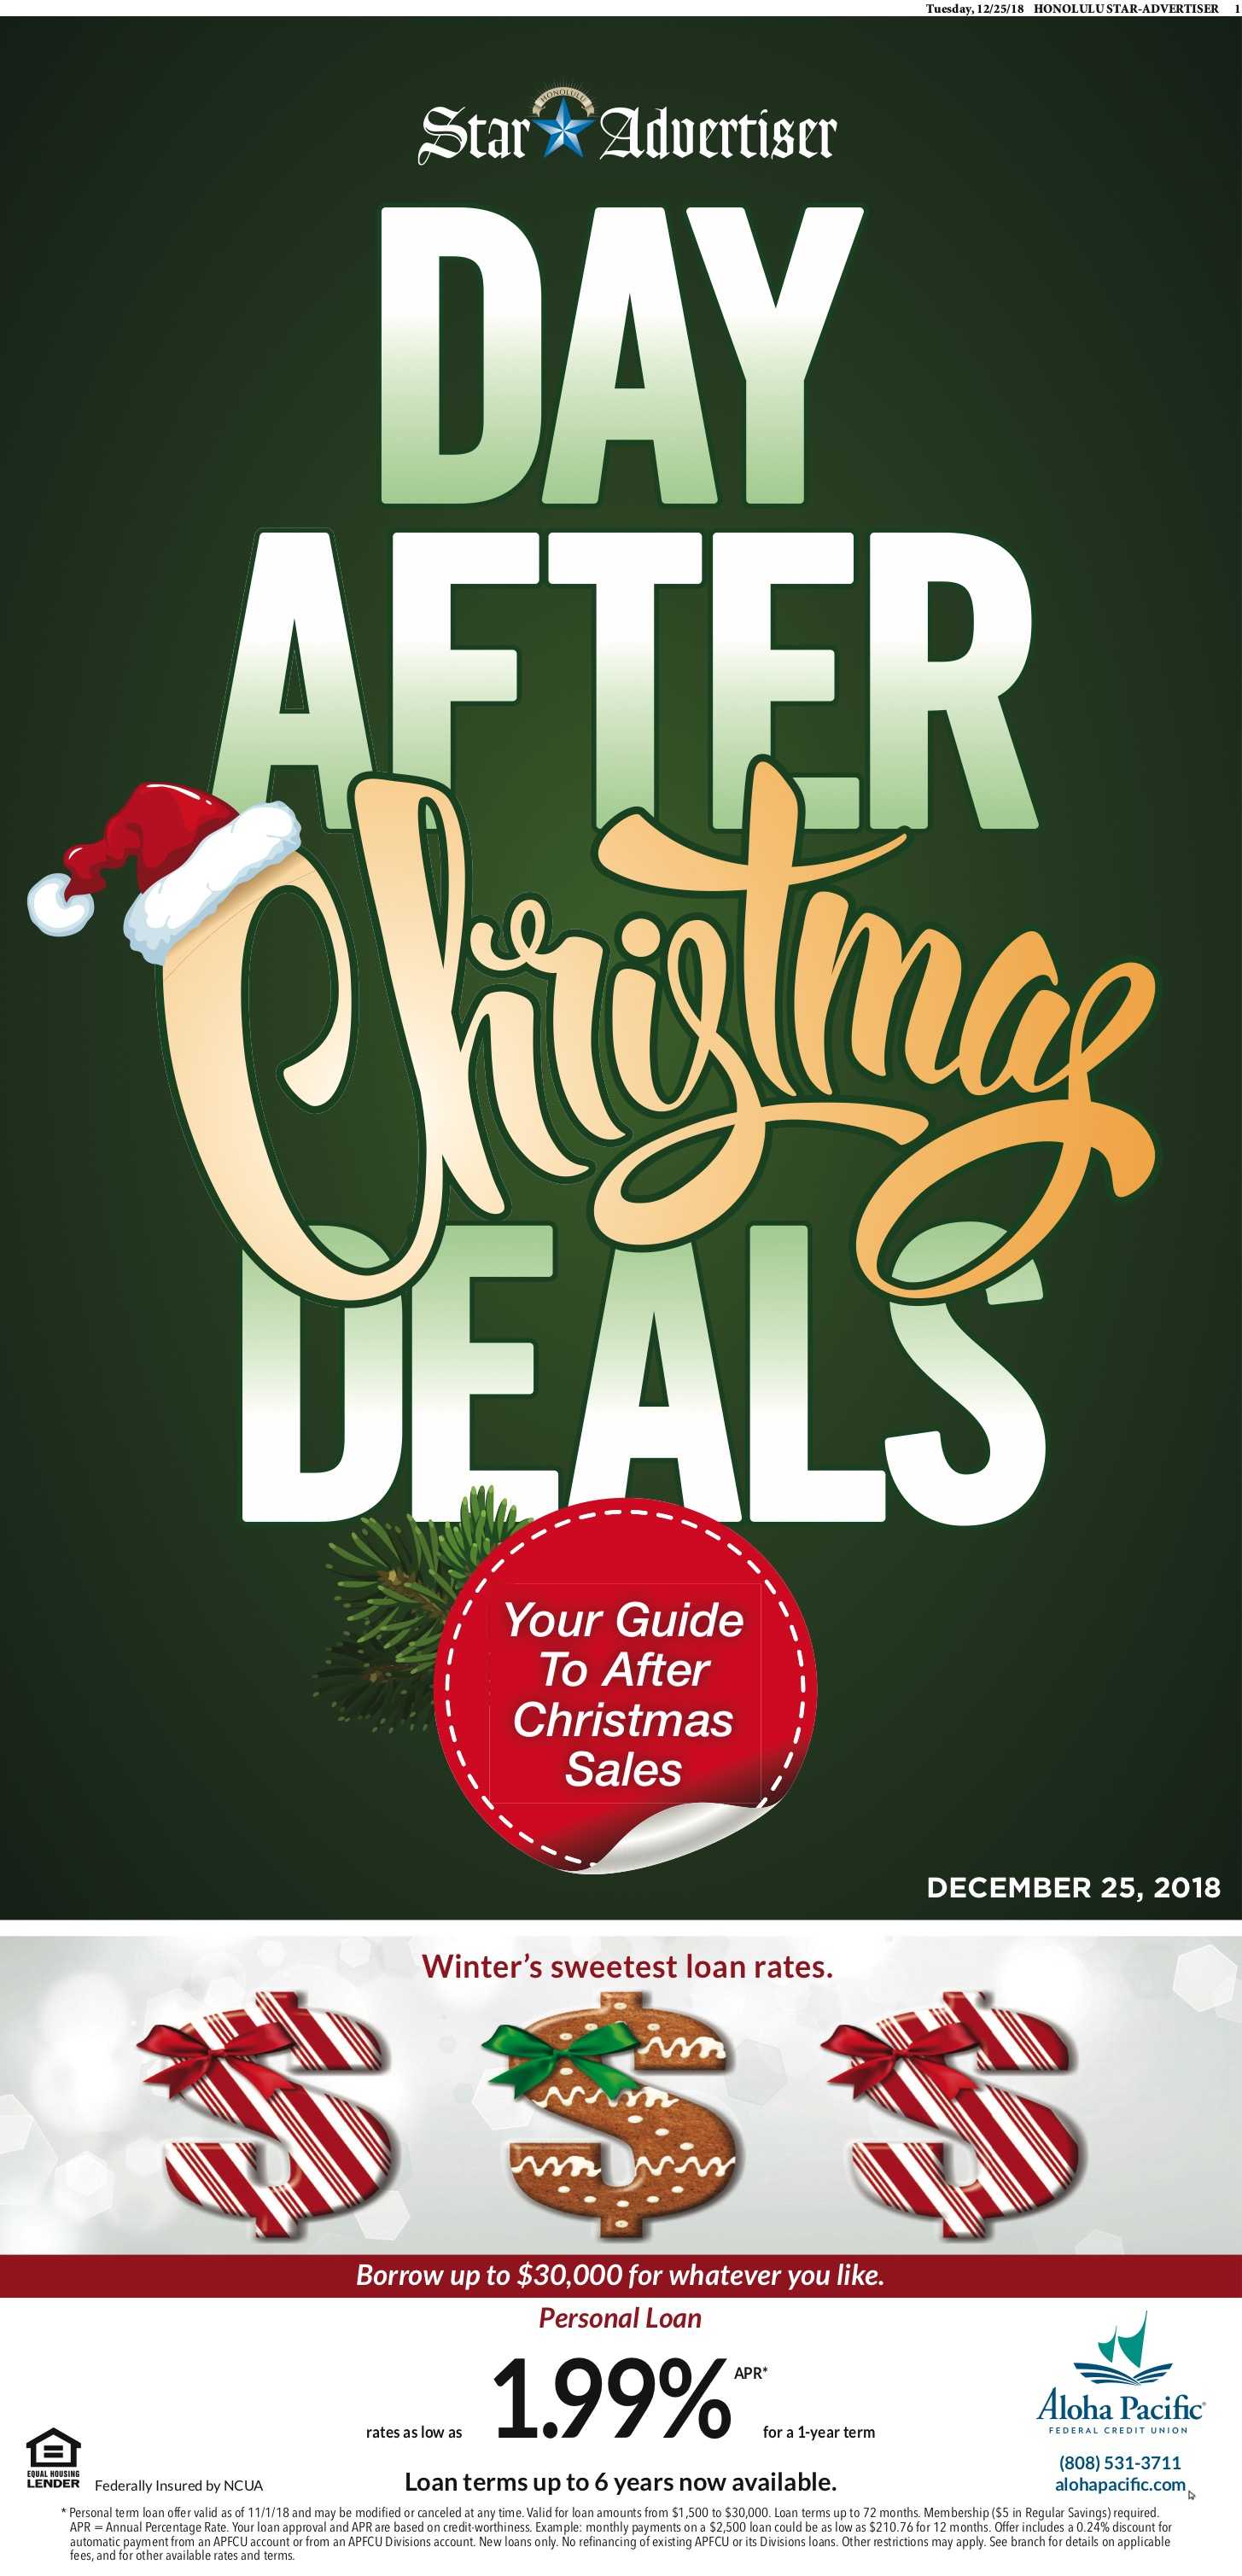 After Christmas Deals.2018 Day After Christmas Deals